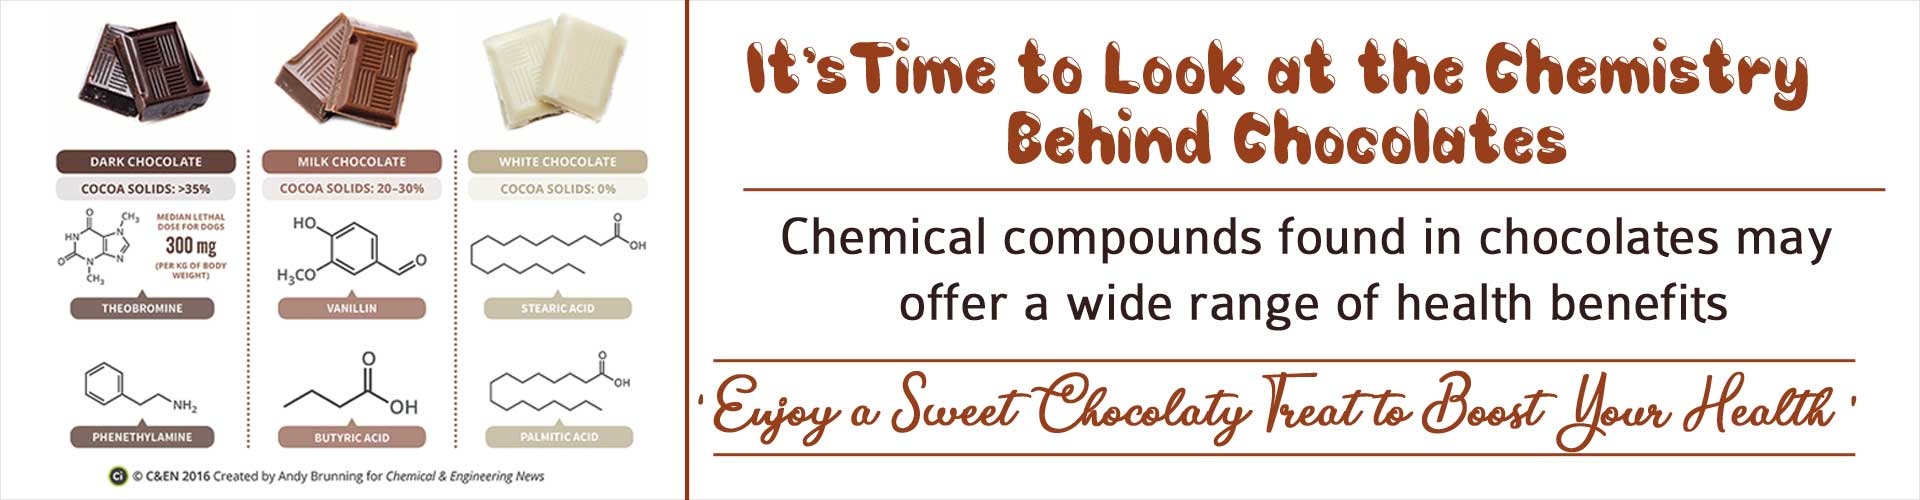 Check Out the Goodness Hidden Behind Chocolate Chemistry